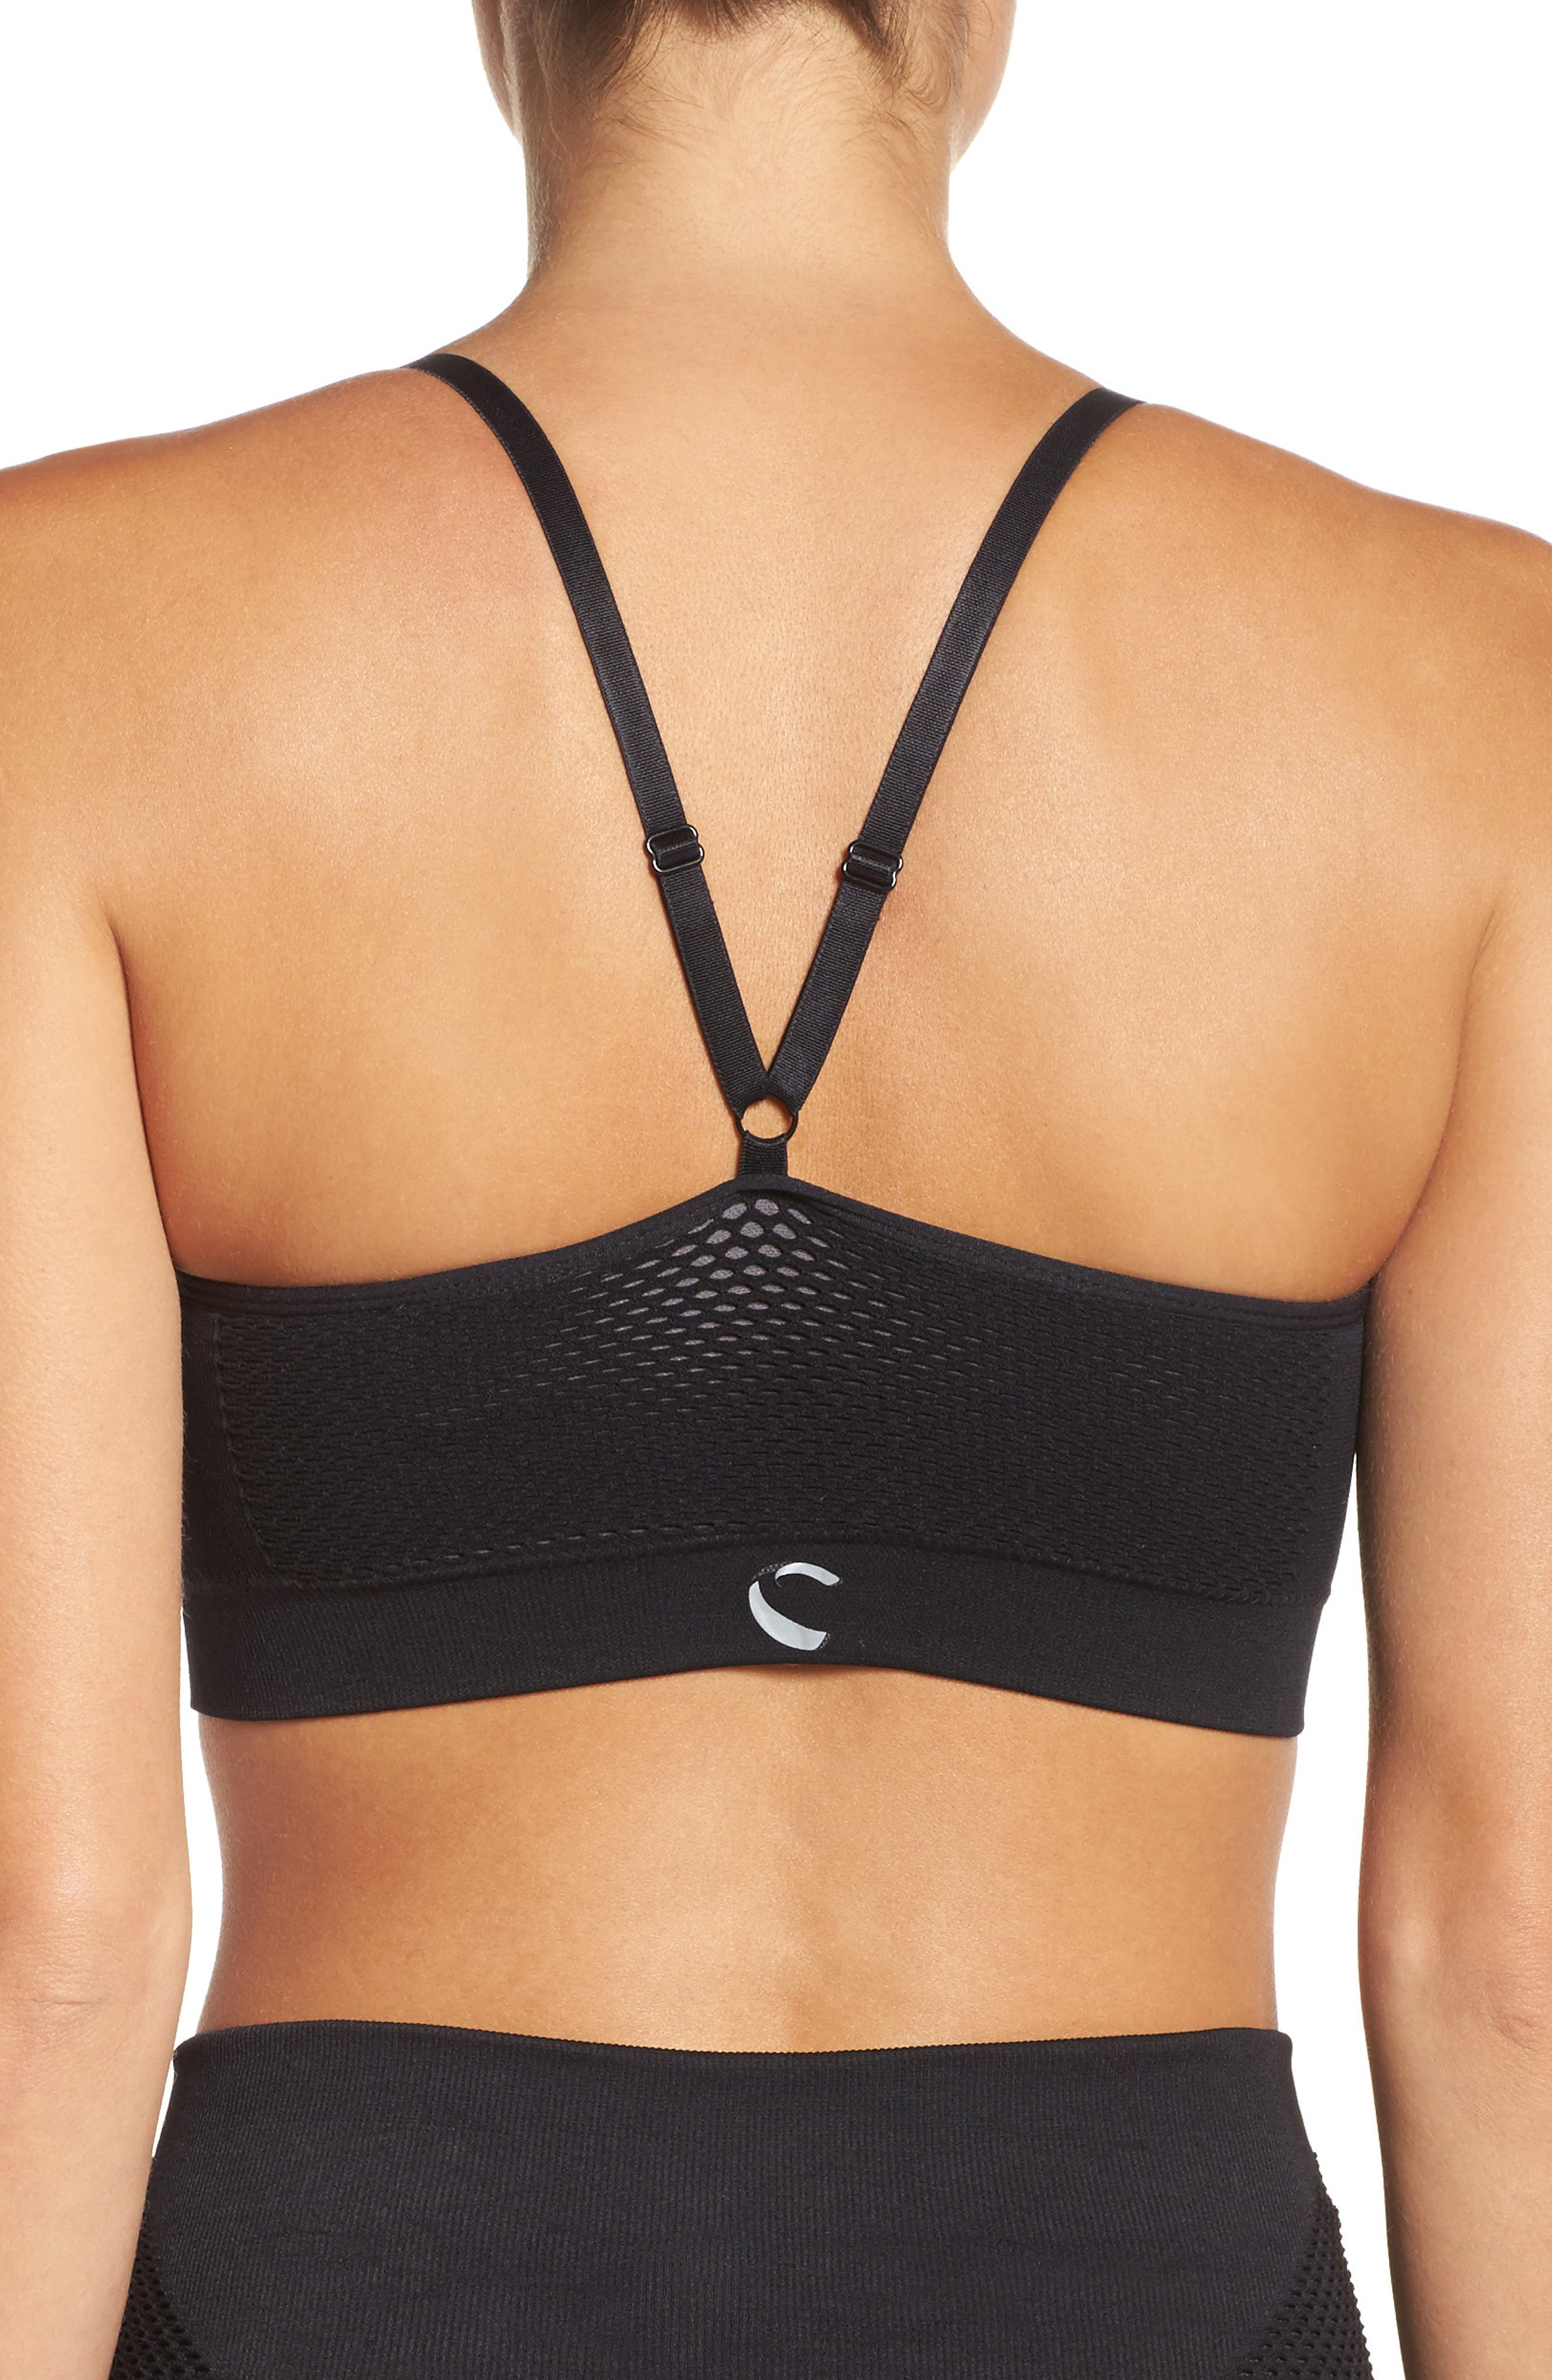 Victory Sports Bra,                             Alternate thumbnail 2, color,                             001